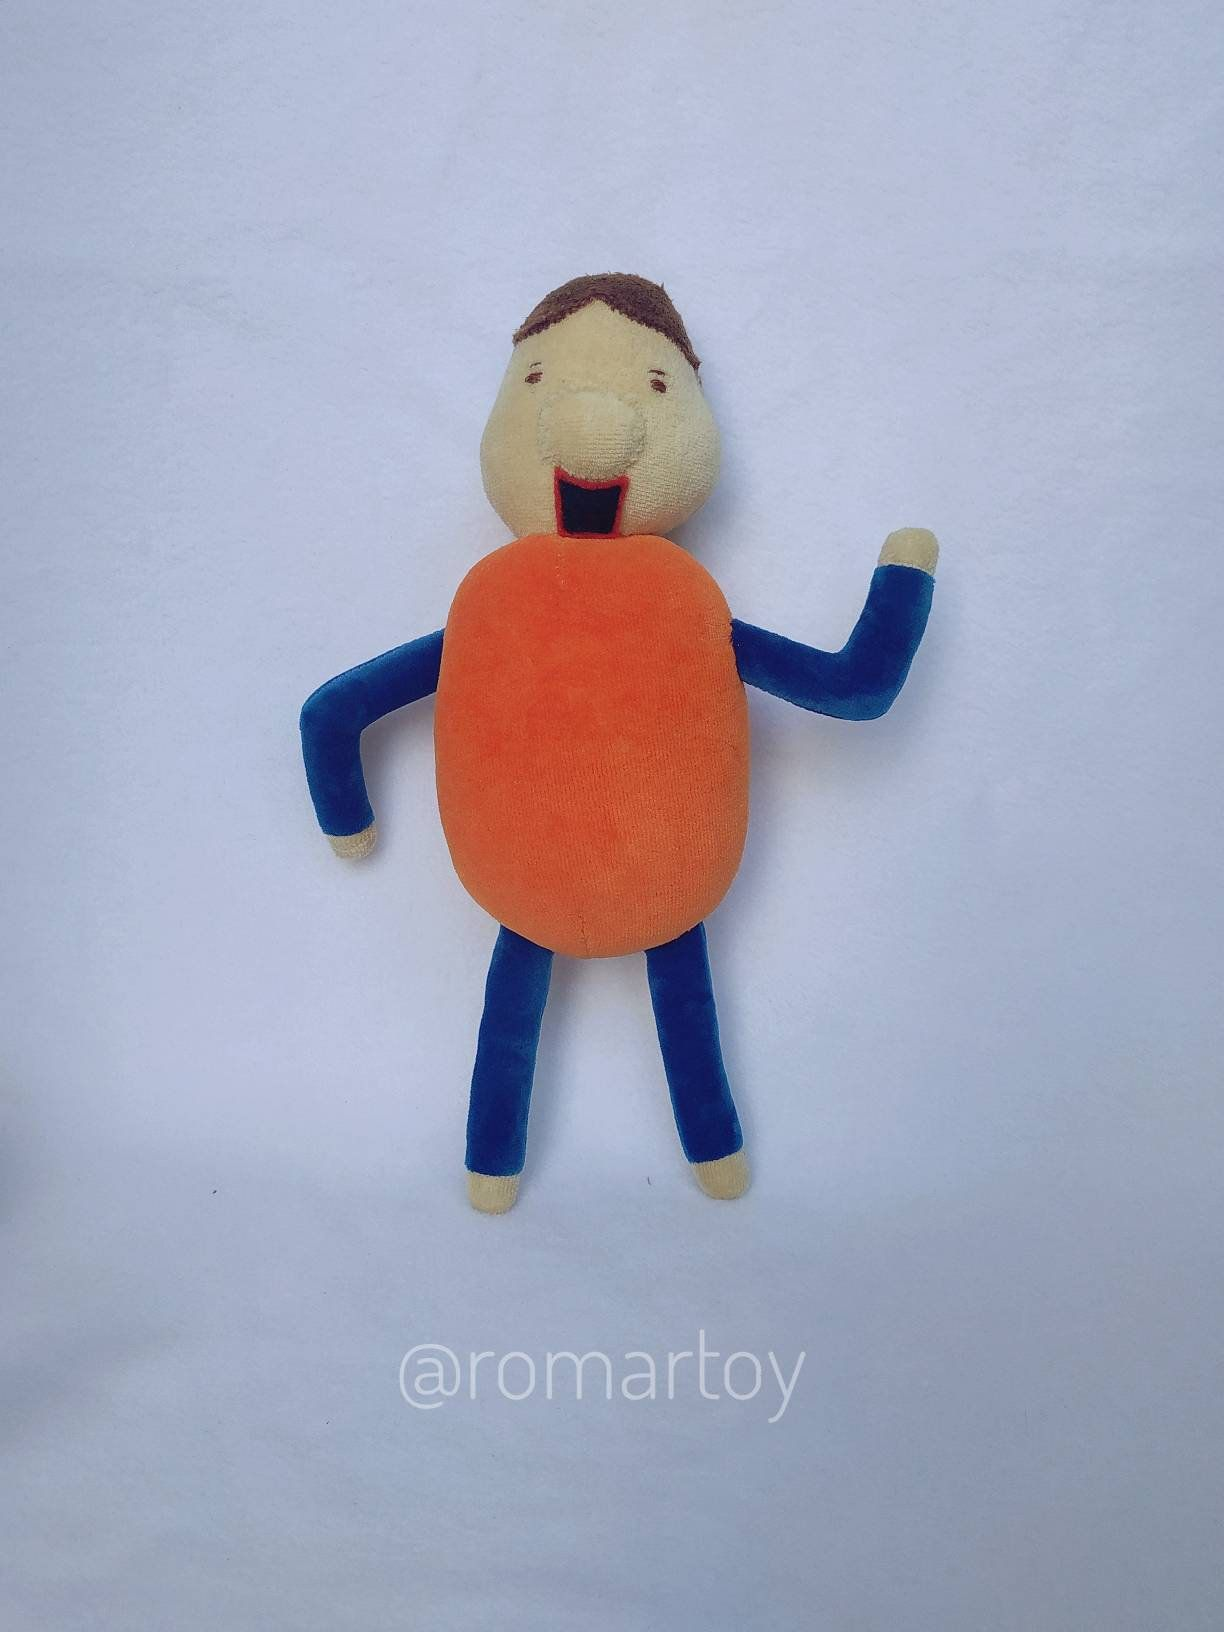 It S A Bully Plush Baldi S Basics In Education And Learning Unofficial Plush Toy